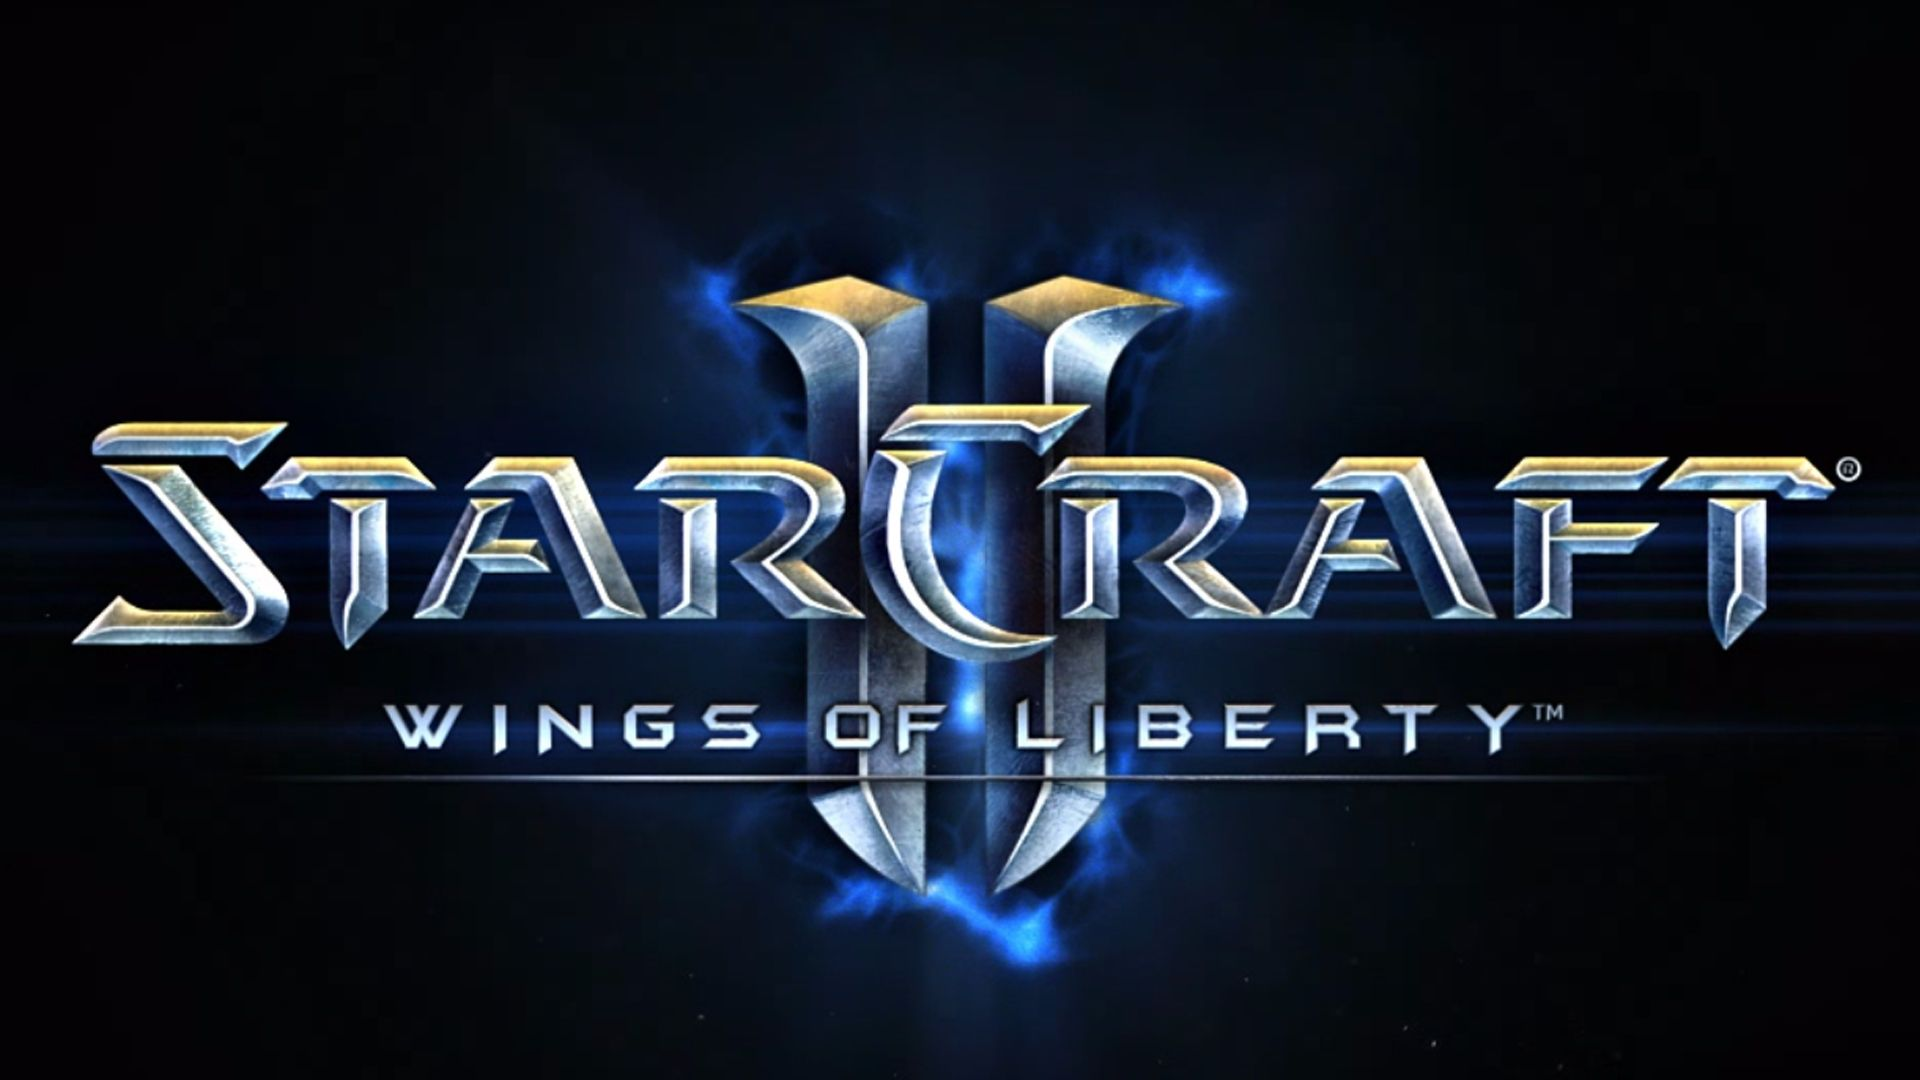 1920x1080 - Starcraft II: Wings Of Liberty HD Wallpapers 6